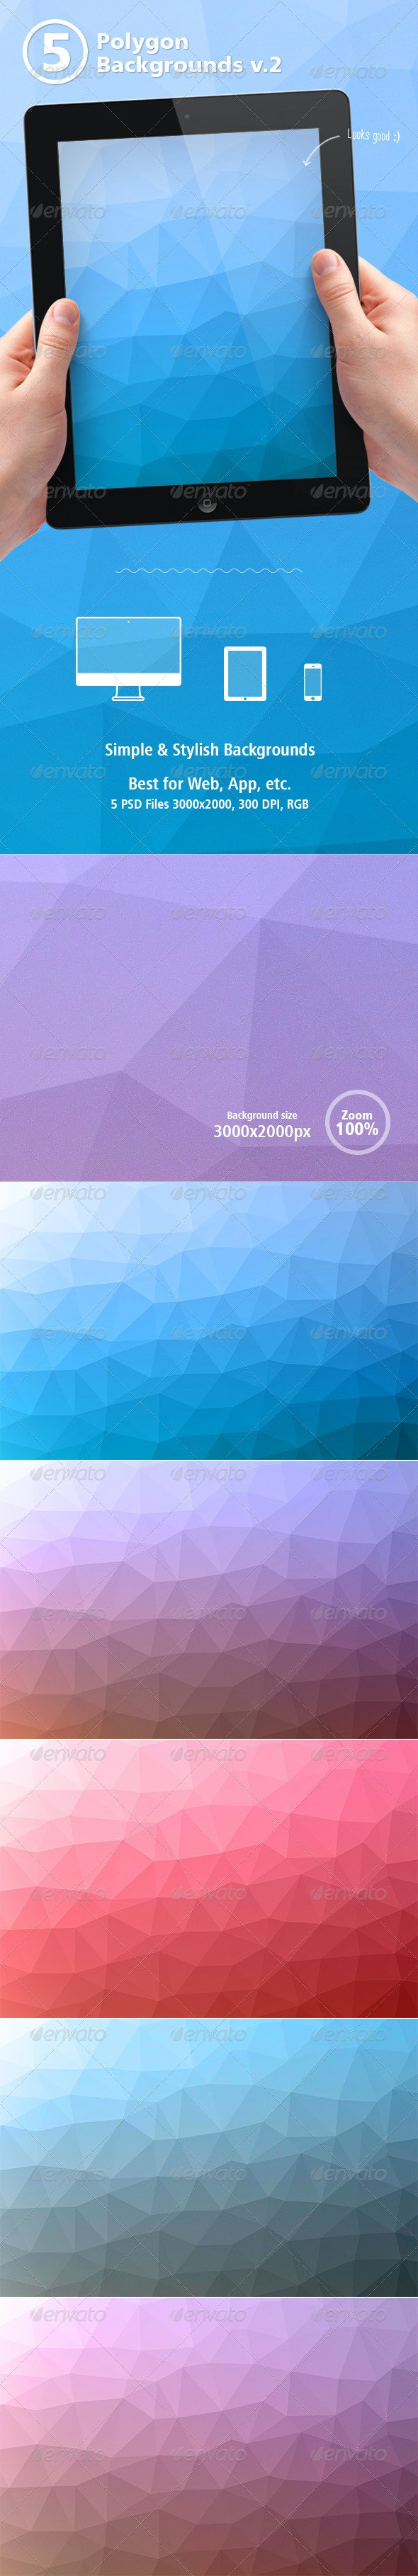 Polygon Backgrounds vol.2 - Abstract Backgrounds